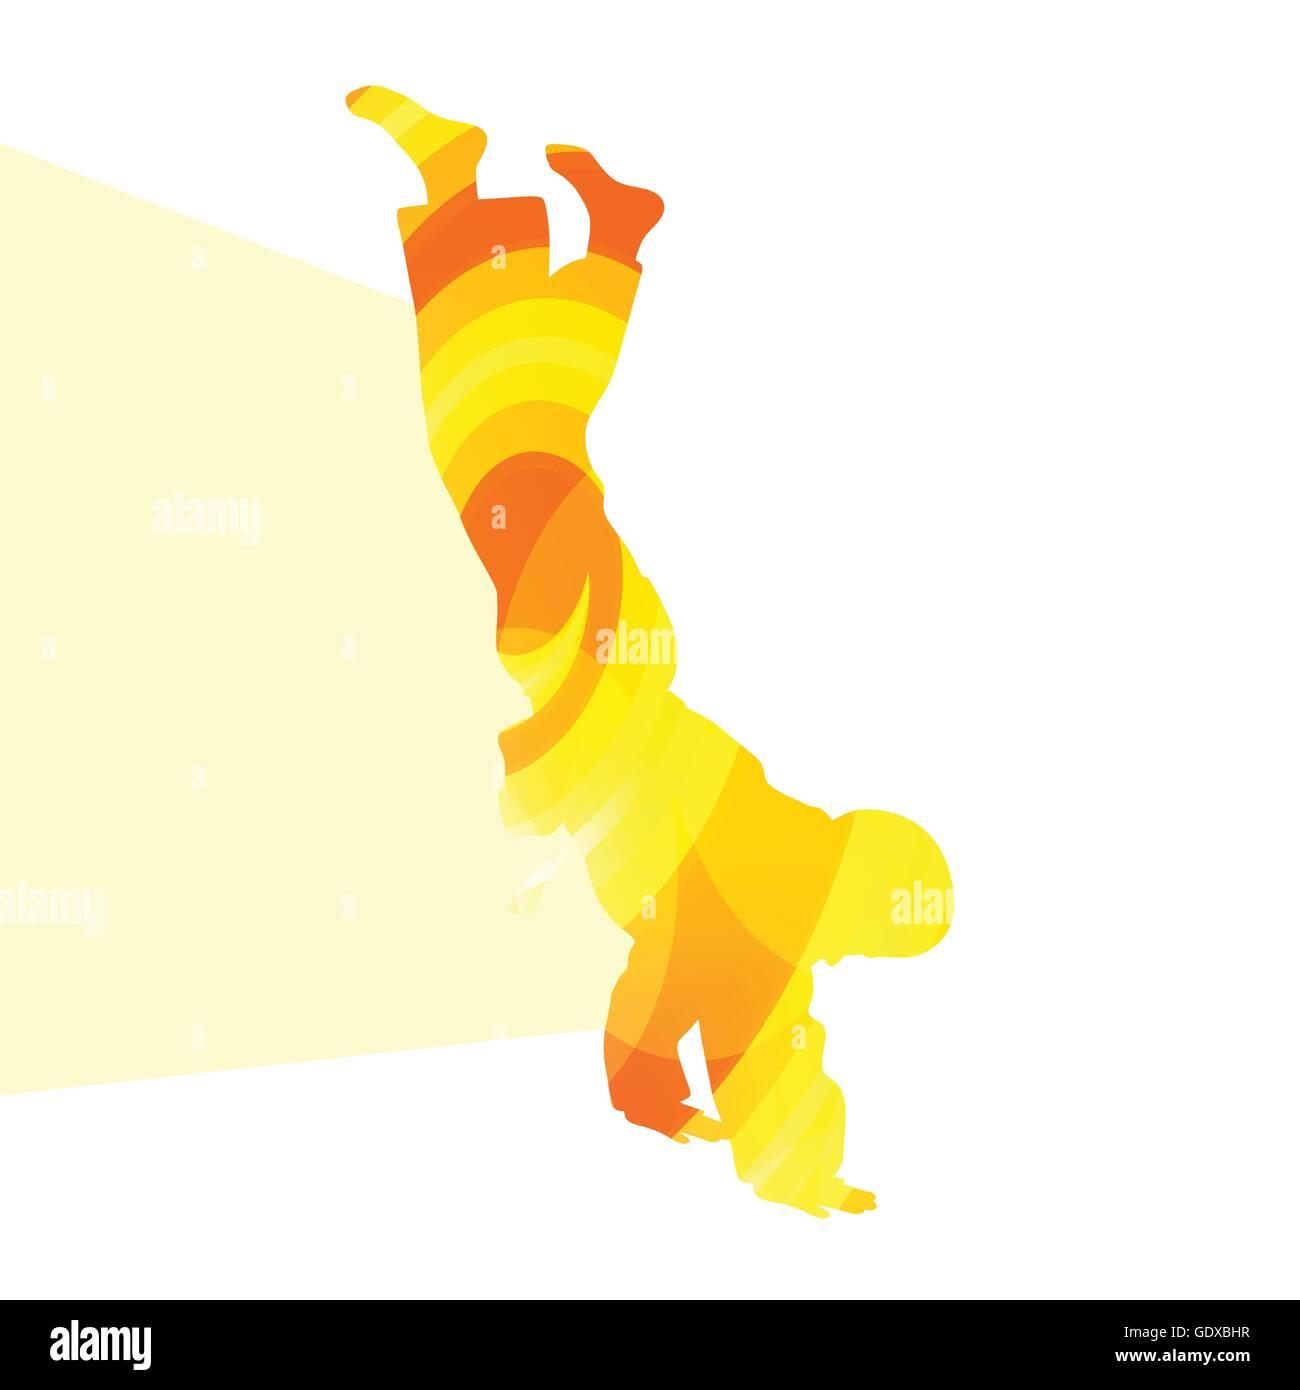 Judo abstract man silhouette illustration vector background colorful concept made of transparent curved shapes - Stock Image